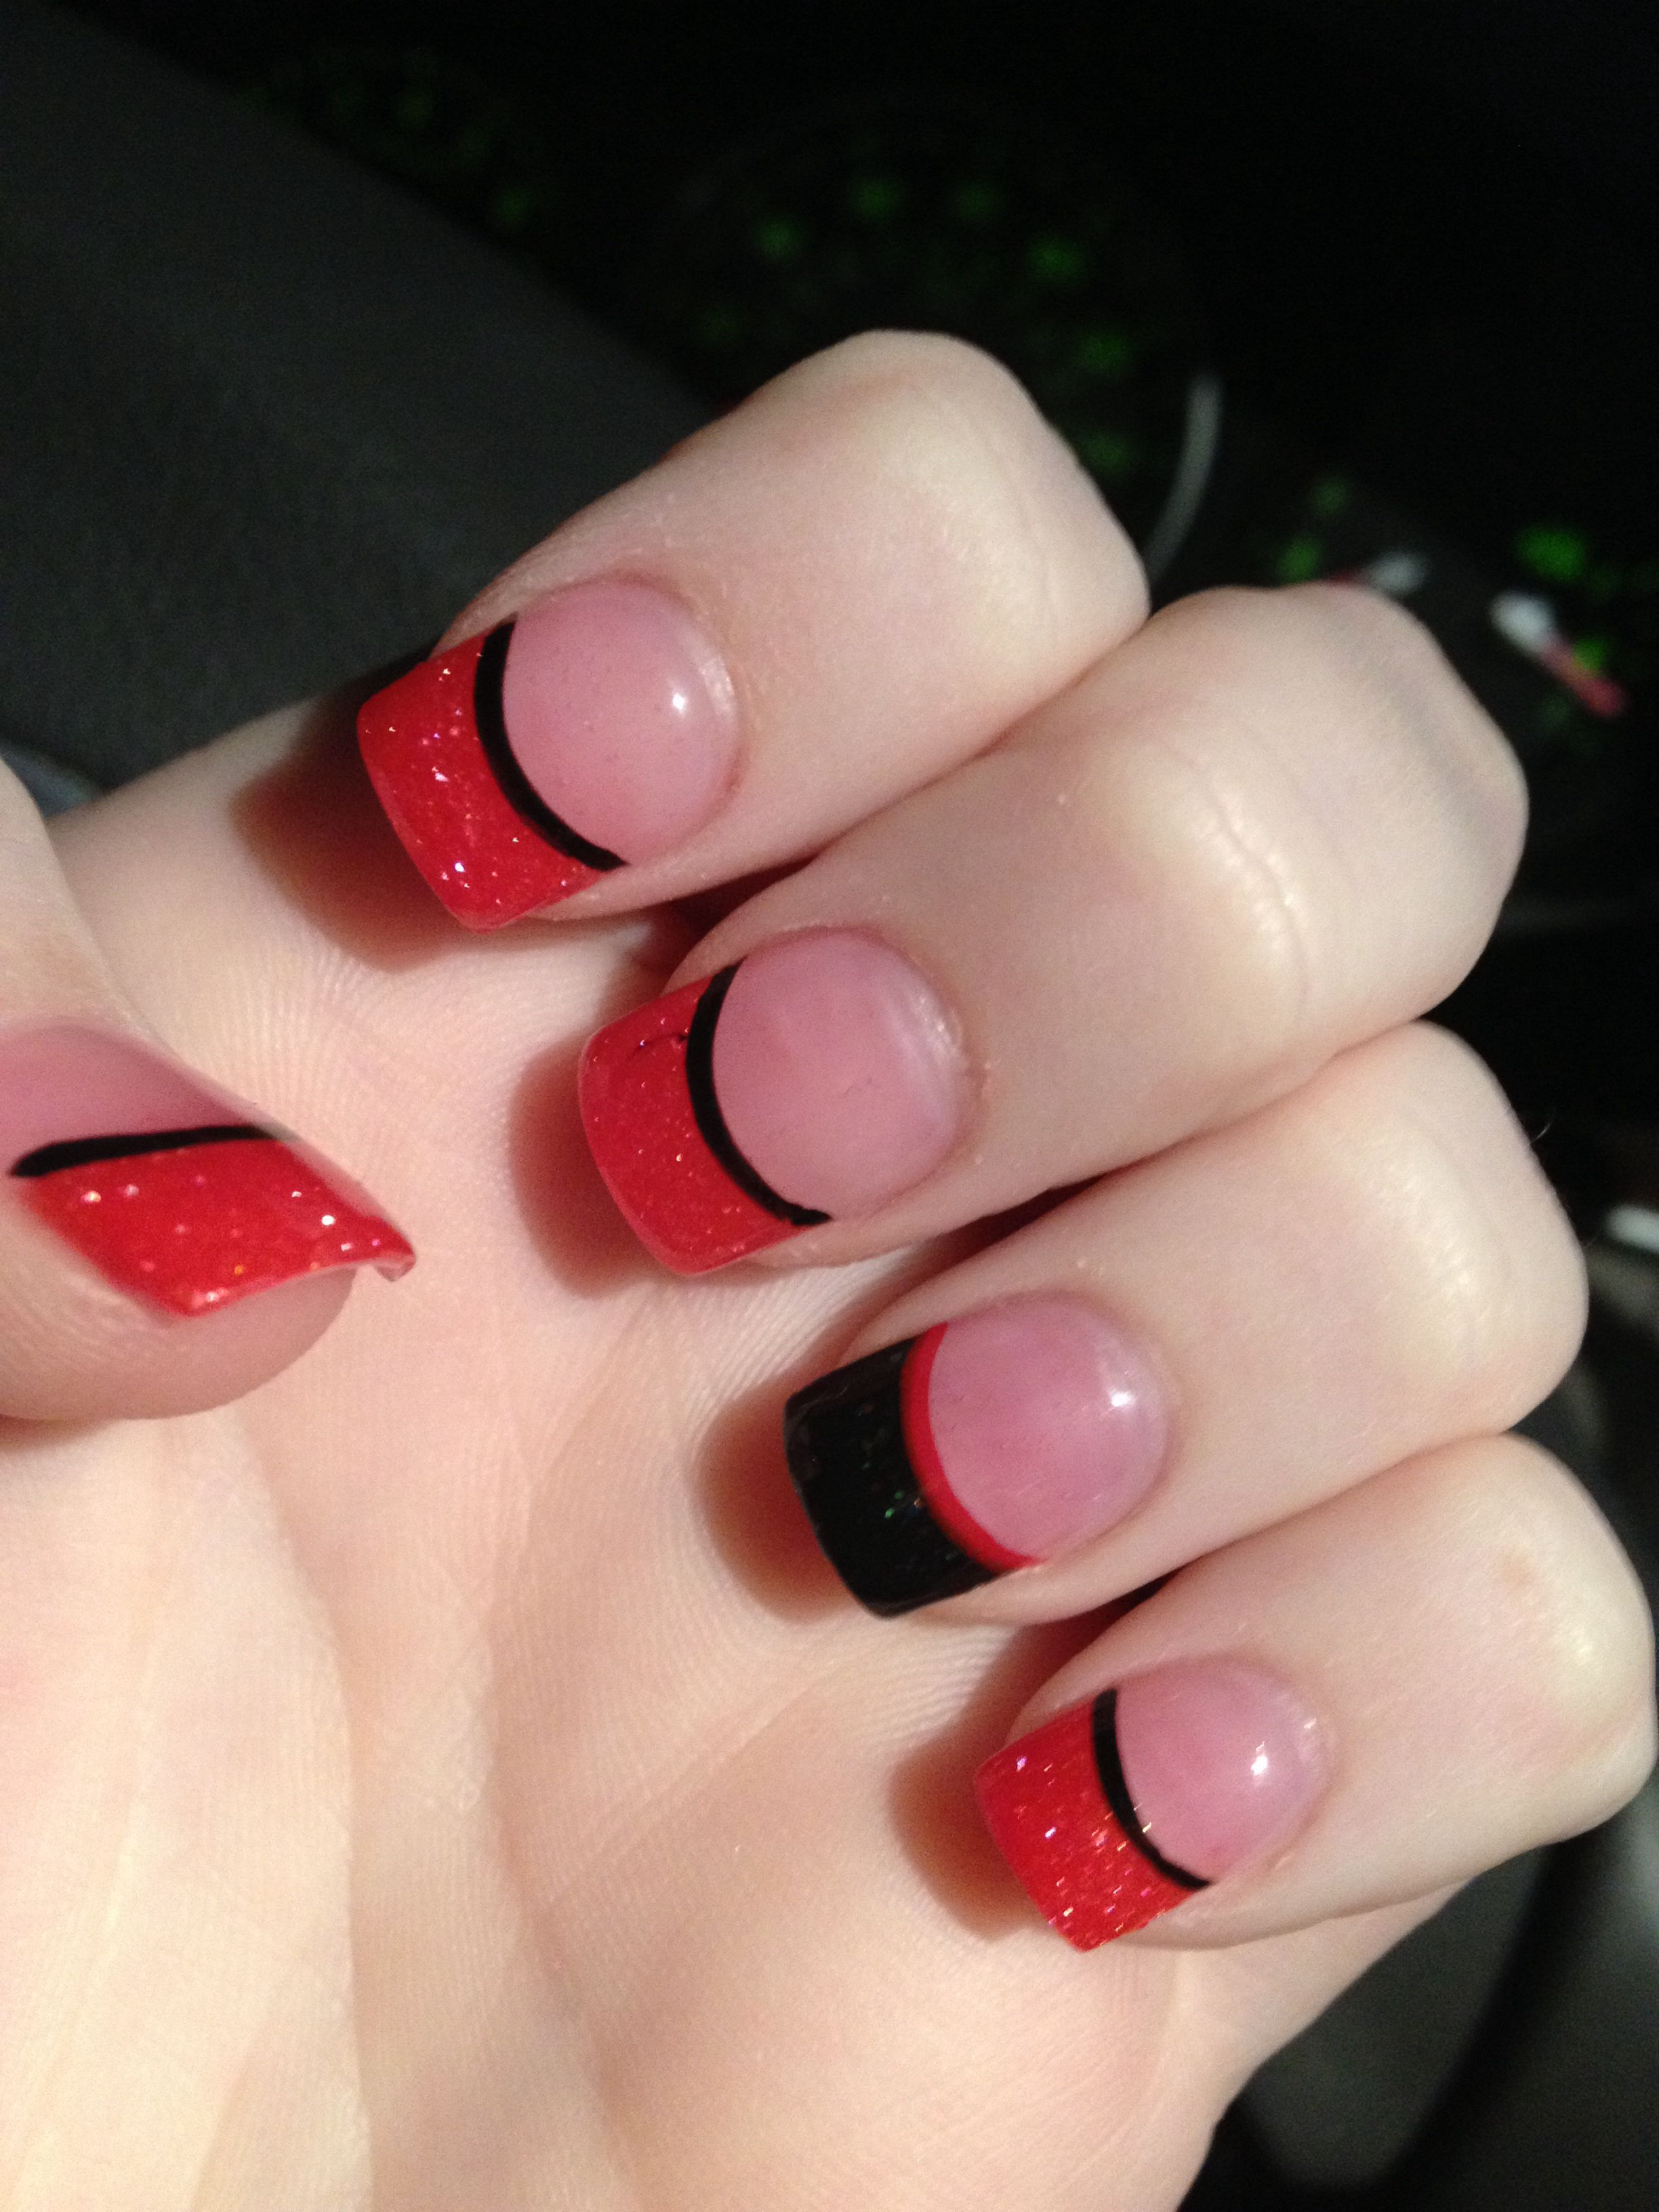 Red Amp Black Solar Nails From Friendly Nails Solar Nail Designs Solar Nails Manicures Designs